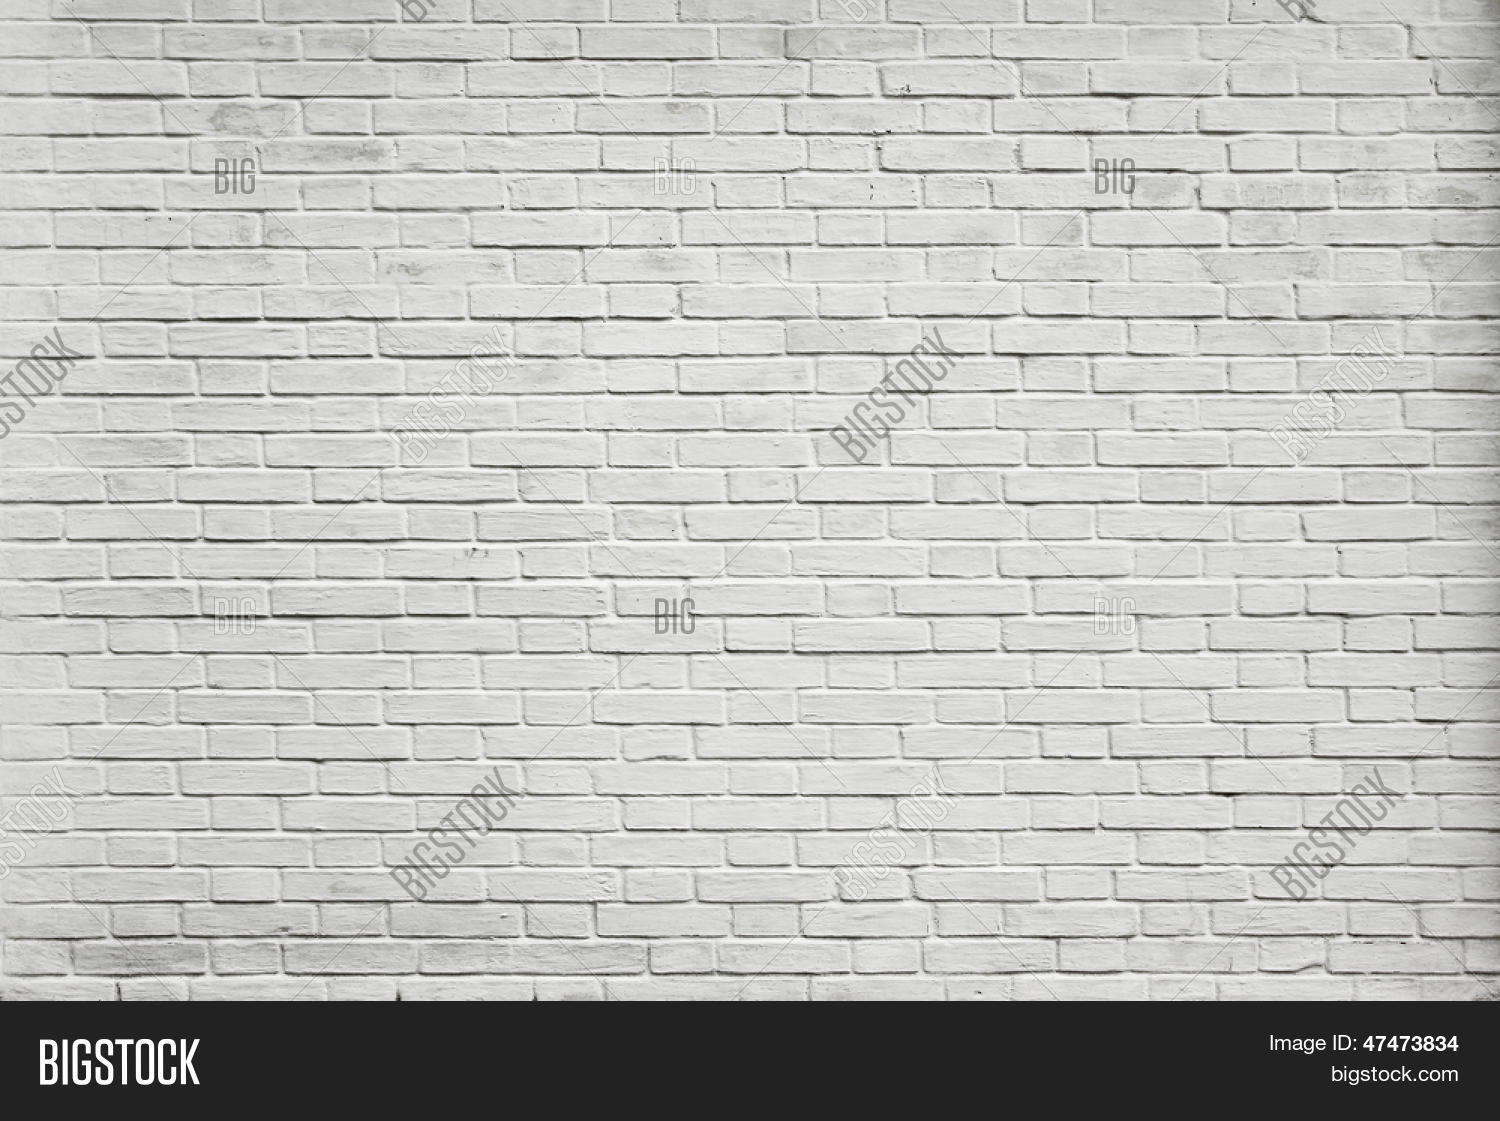 Grungy Textured White Image Photo Free Trial Bigstock